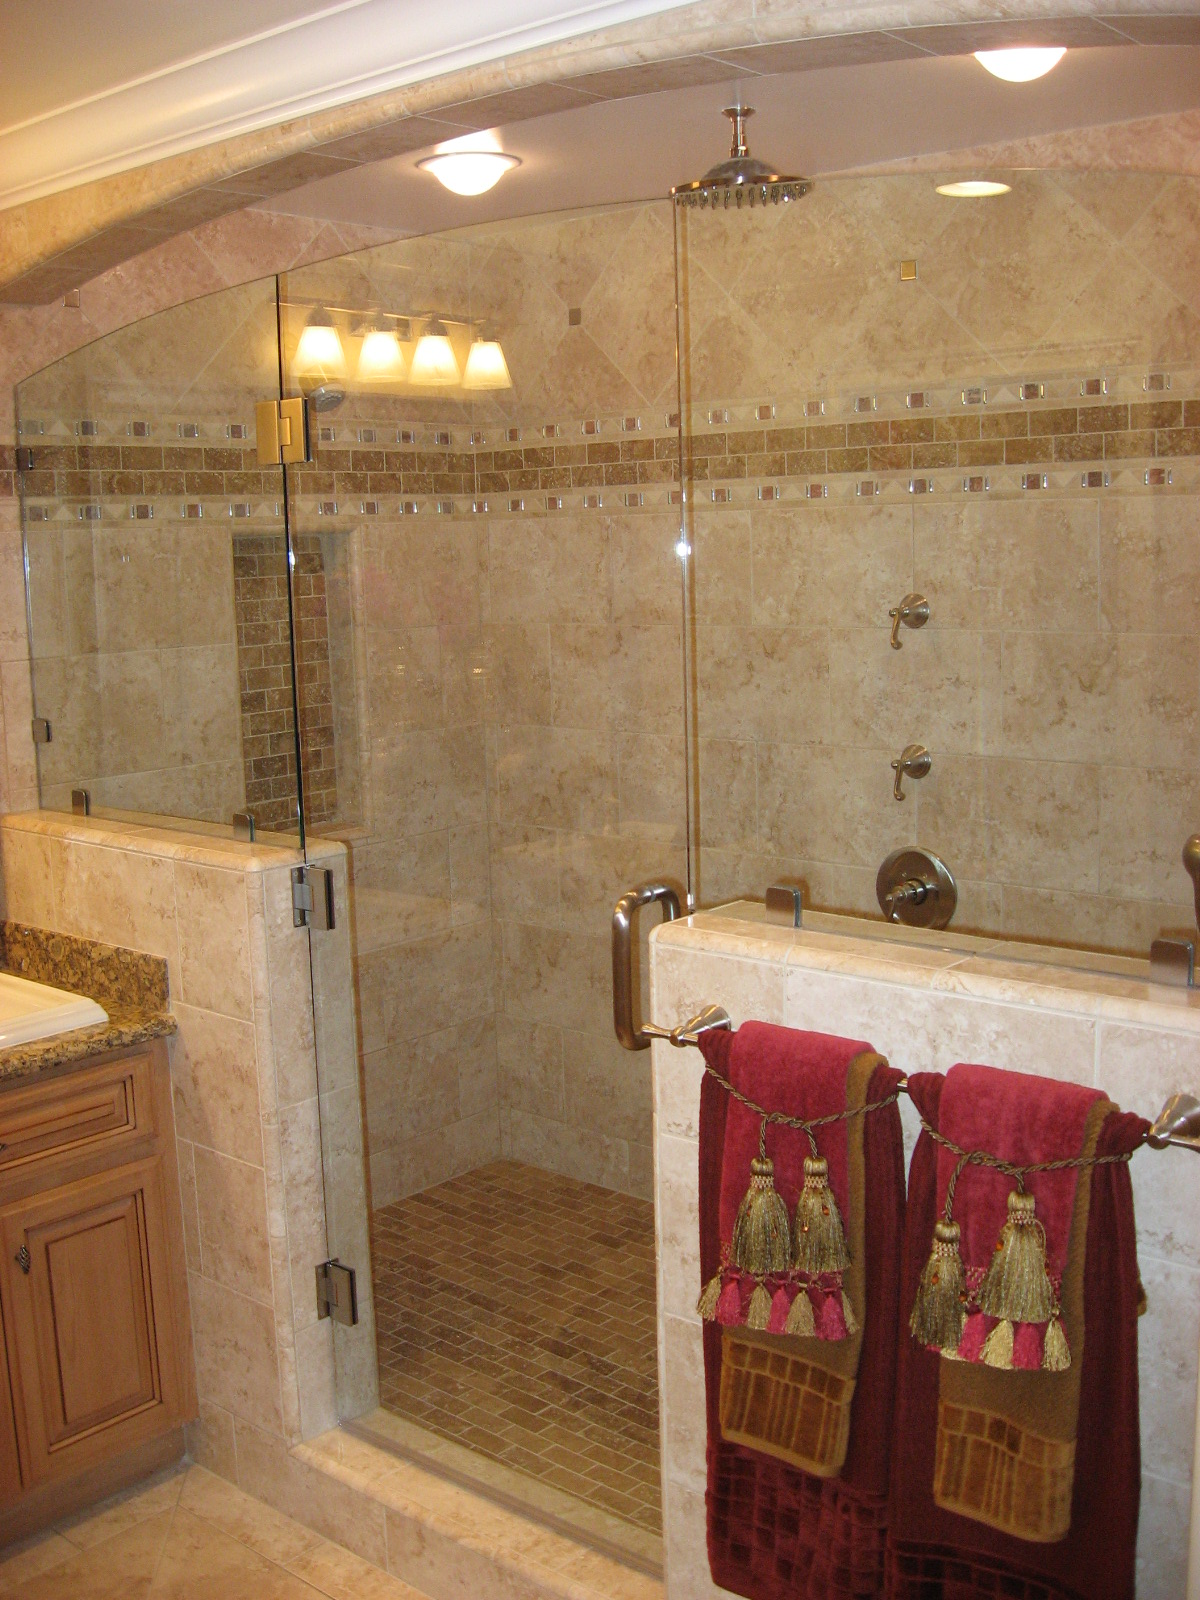 Small Bathroom Shower Tile Ideas Large And Beautiful Photos - Images of bathroom showers for bathroom decor ideas